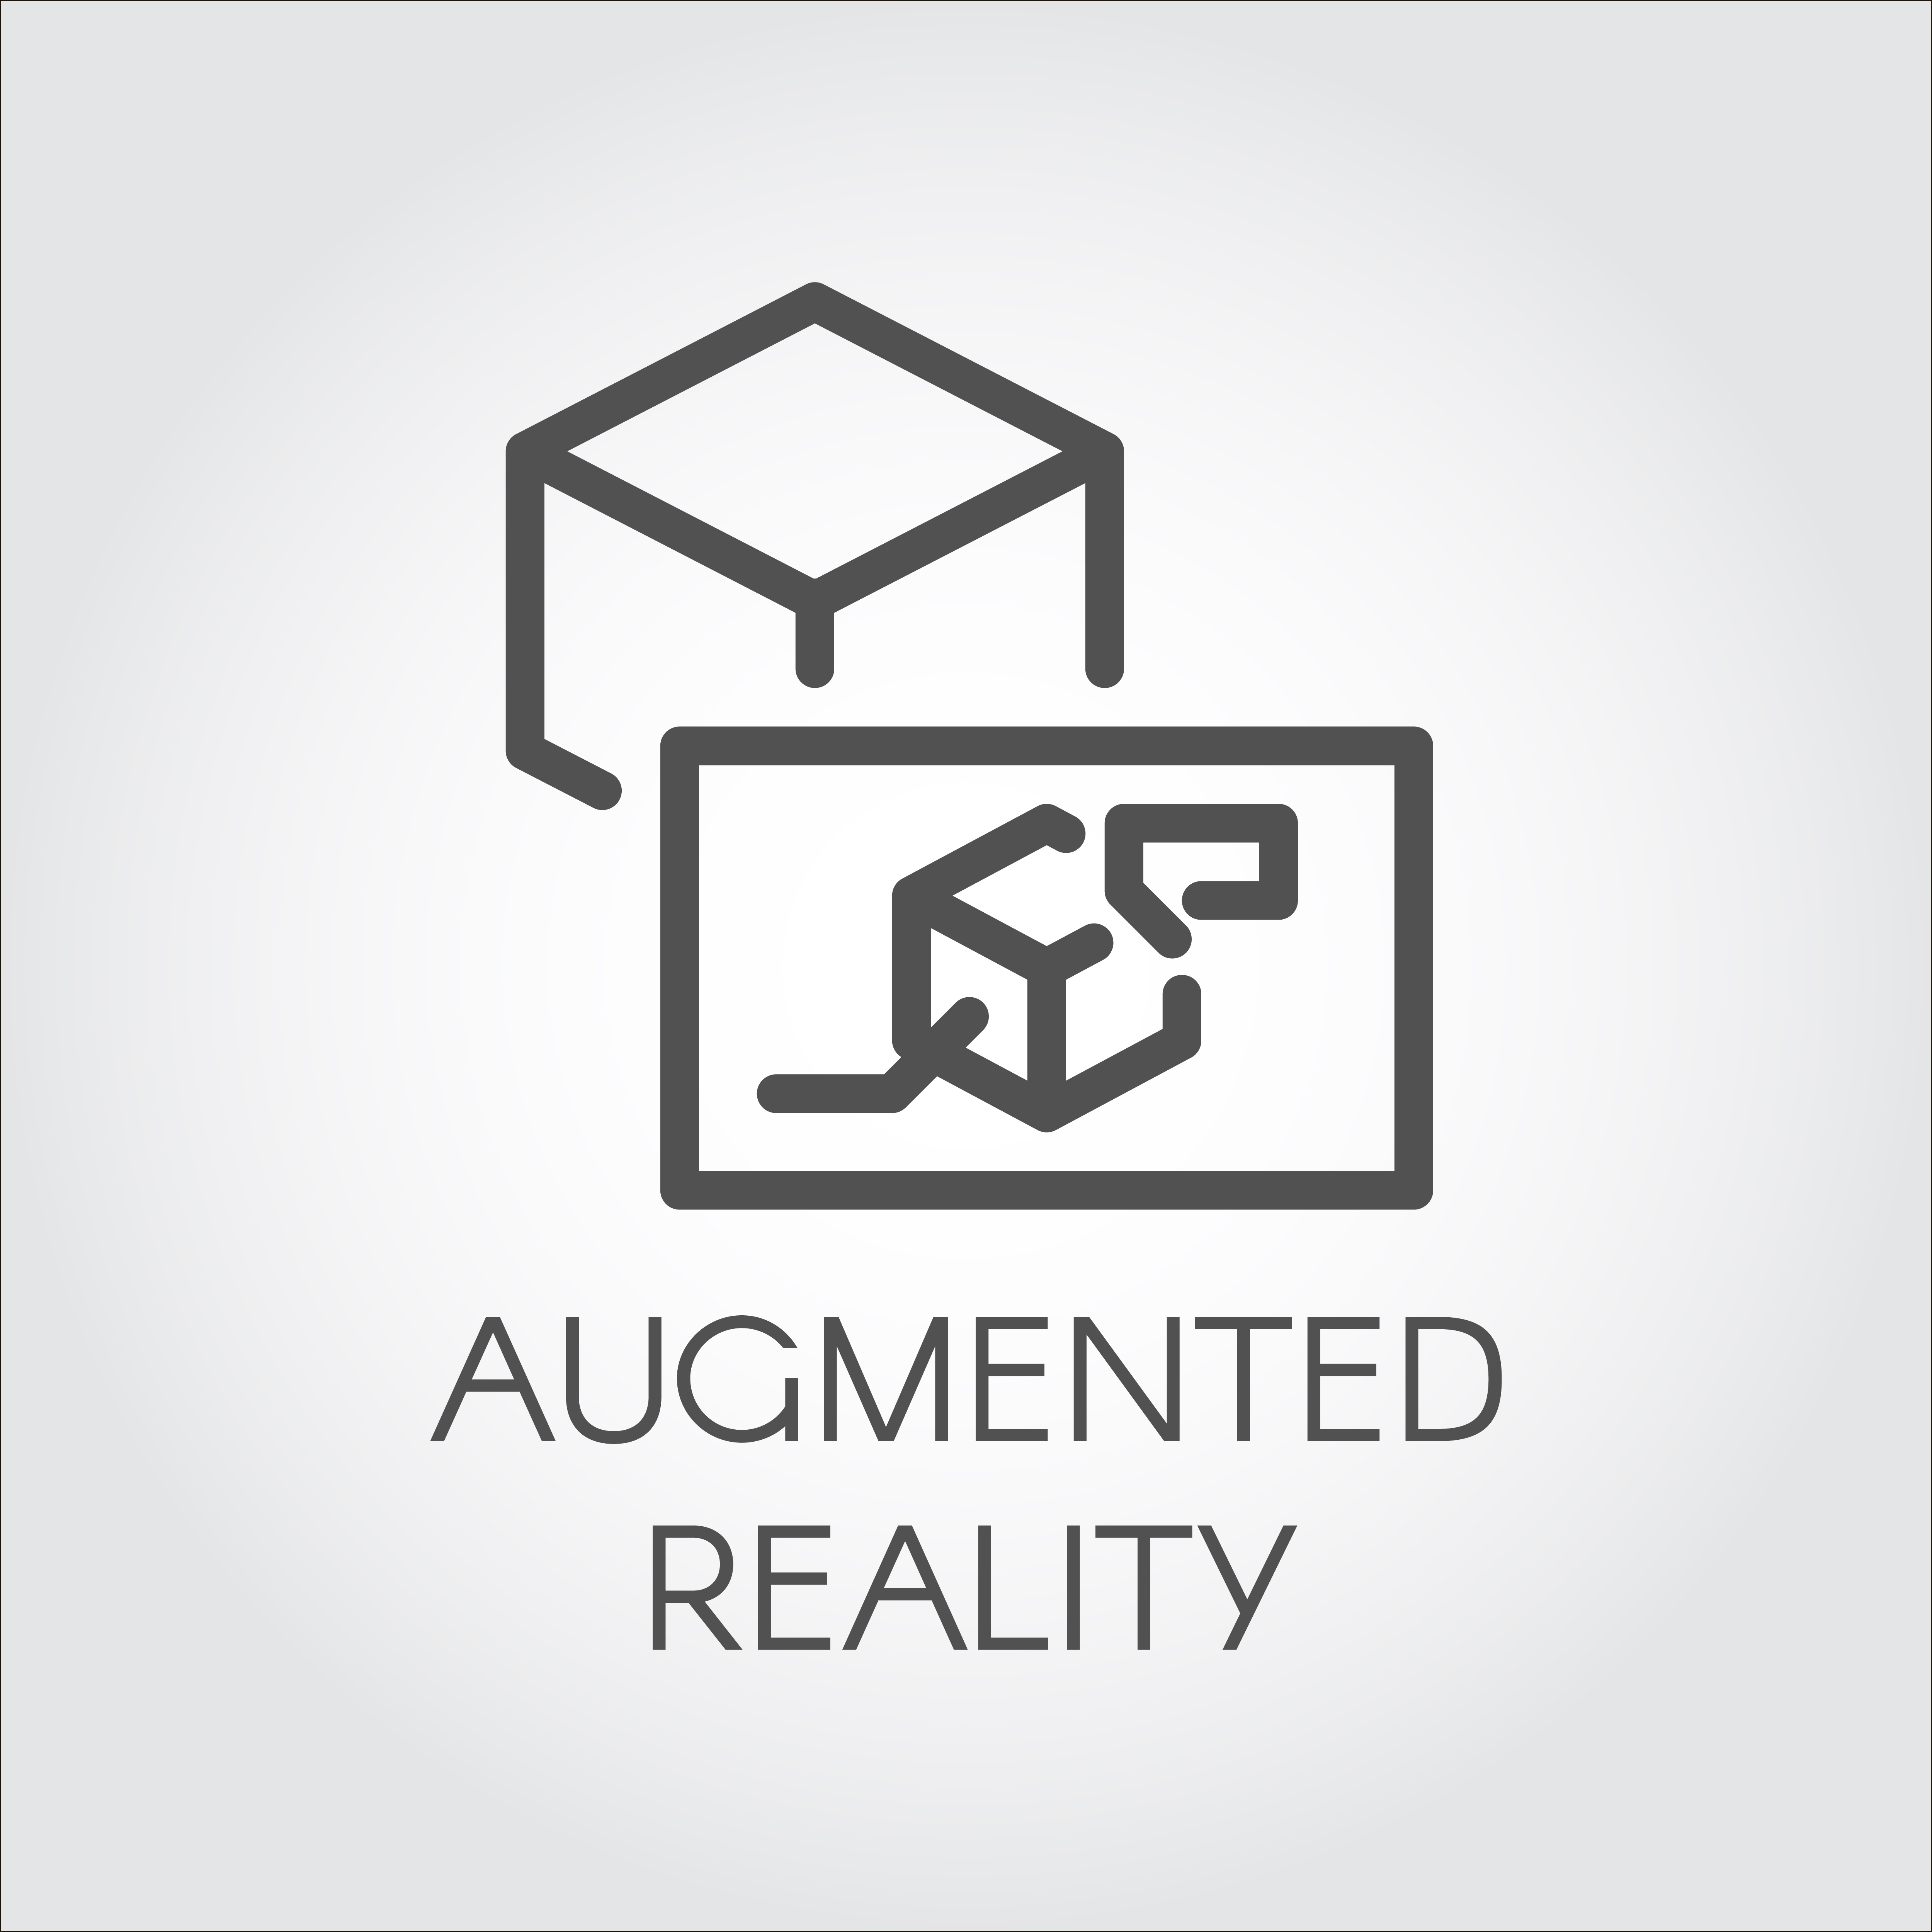 check the post:Virtual and Augmented Reality: Their Future in Mobile Apps for a description of the image